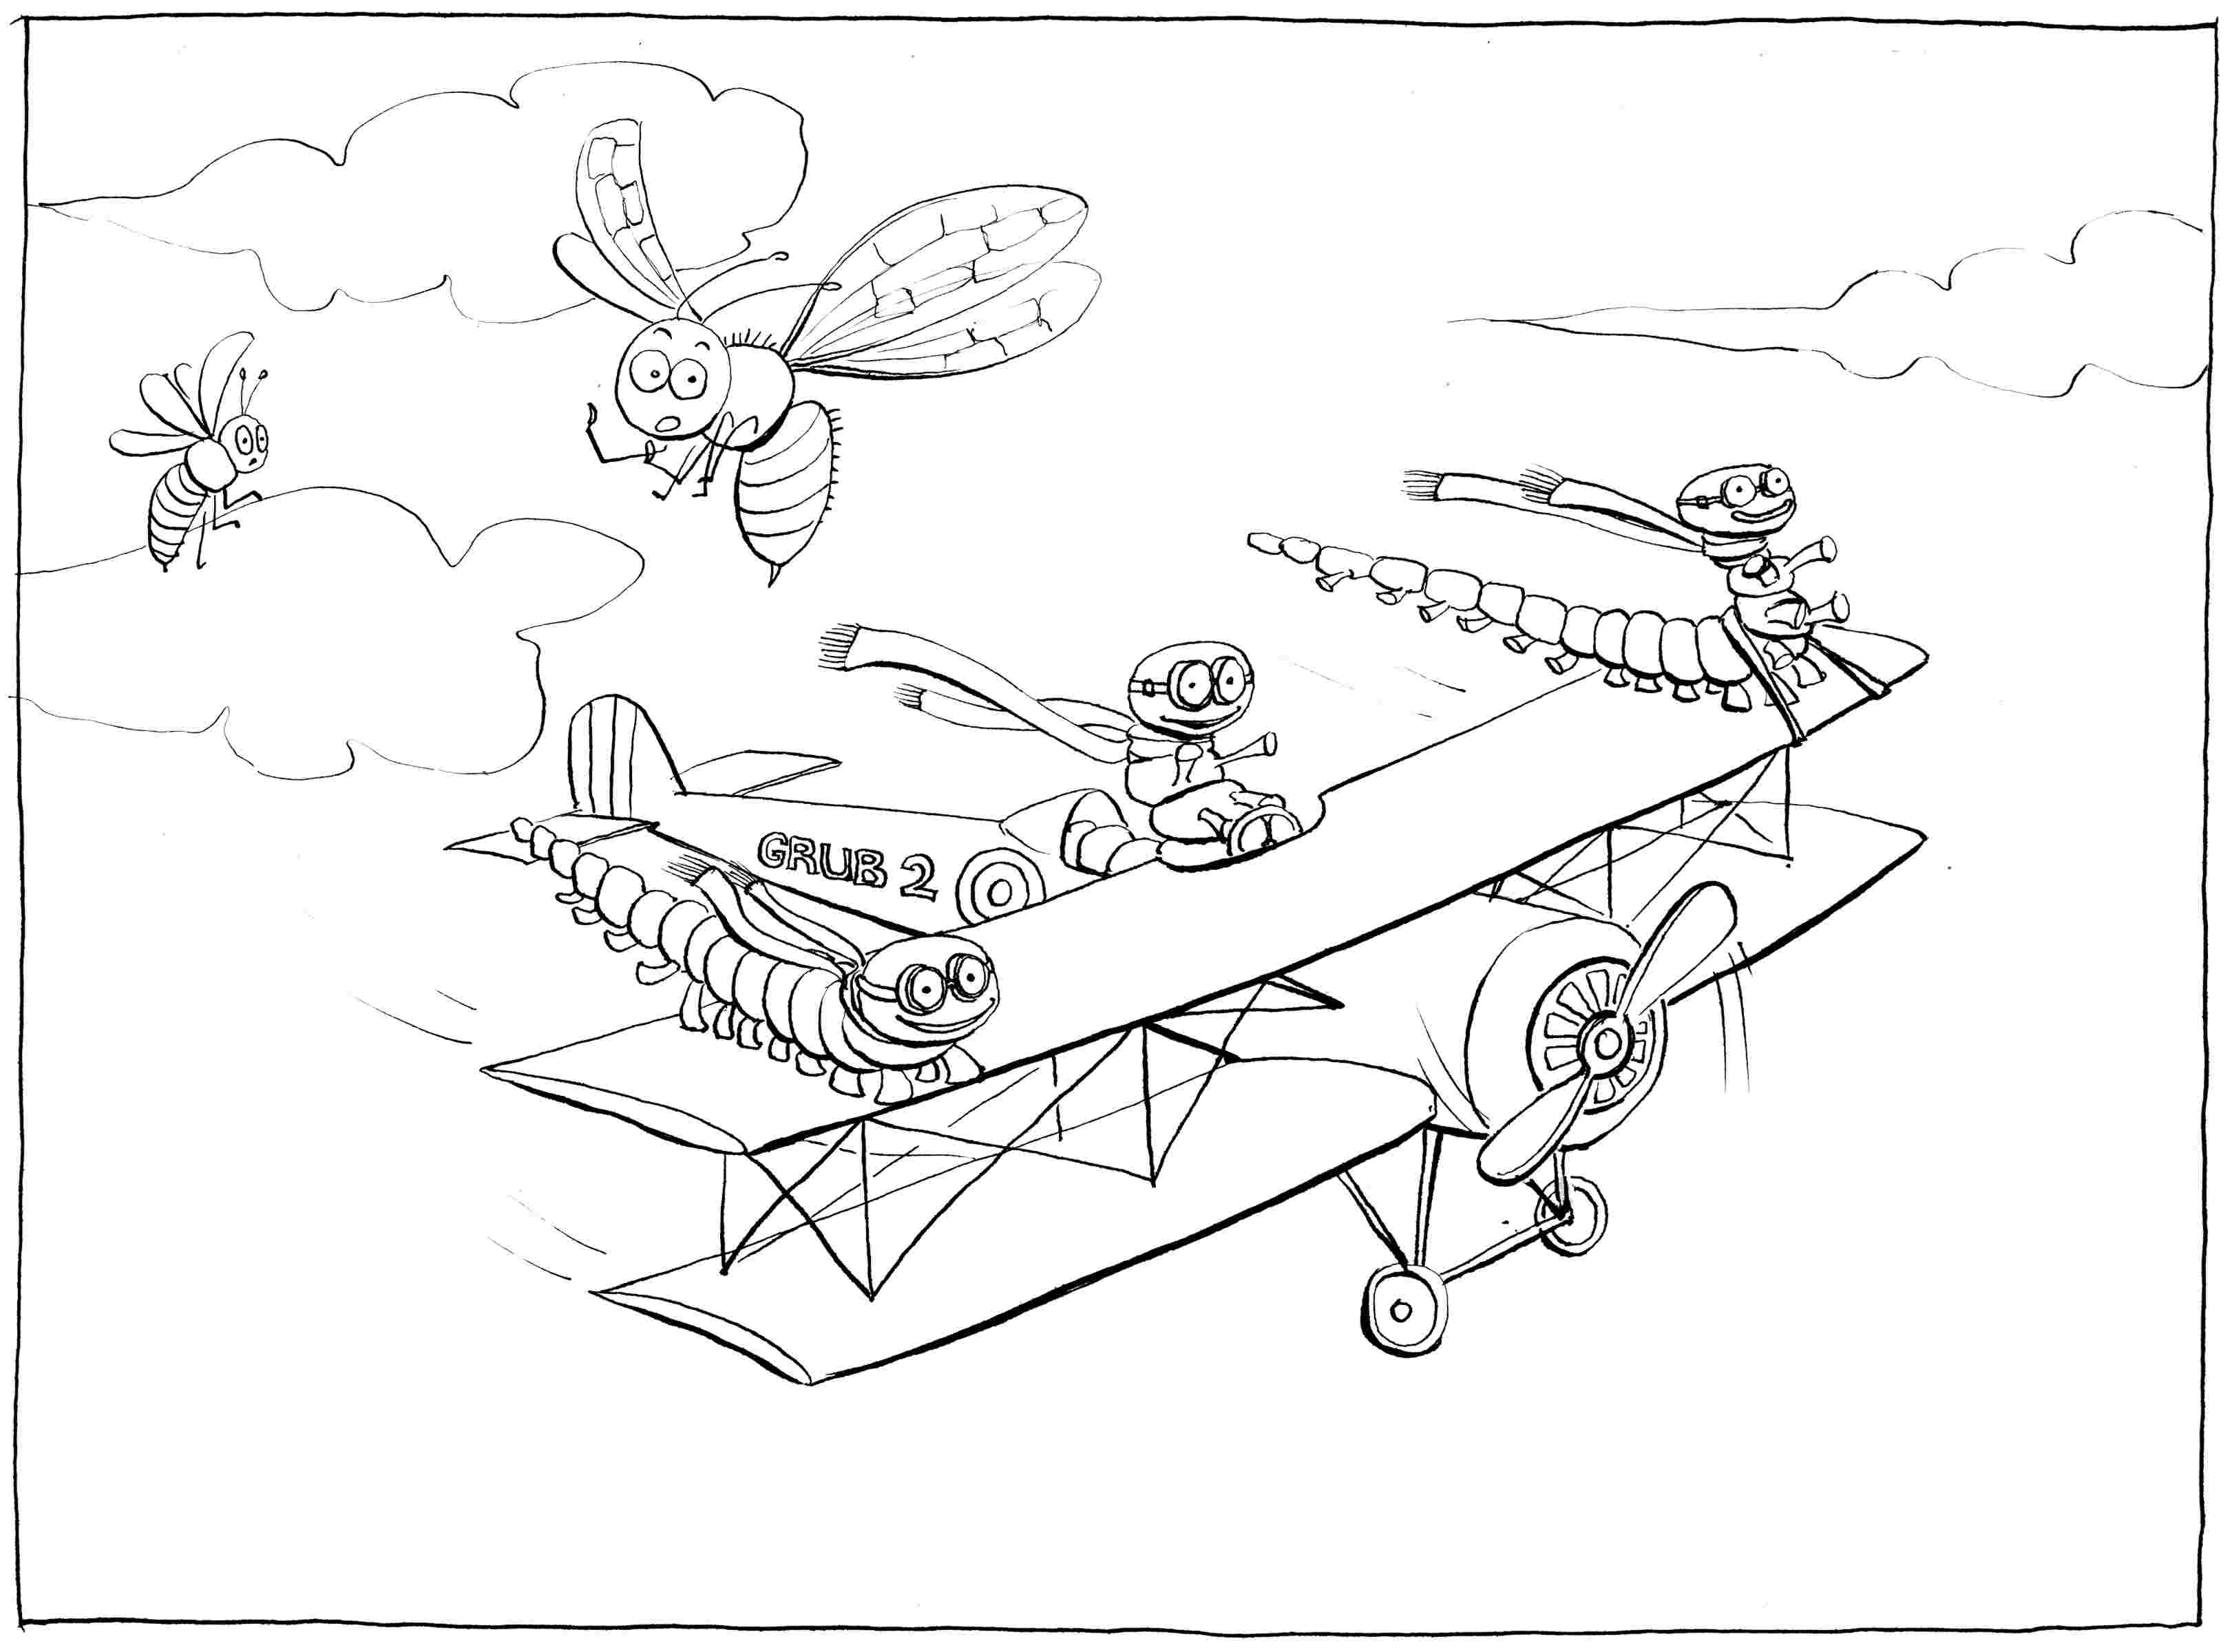 Learning to Fly: part II - colouring-in drawing - to download, right click and save, print out and colour in!